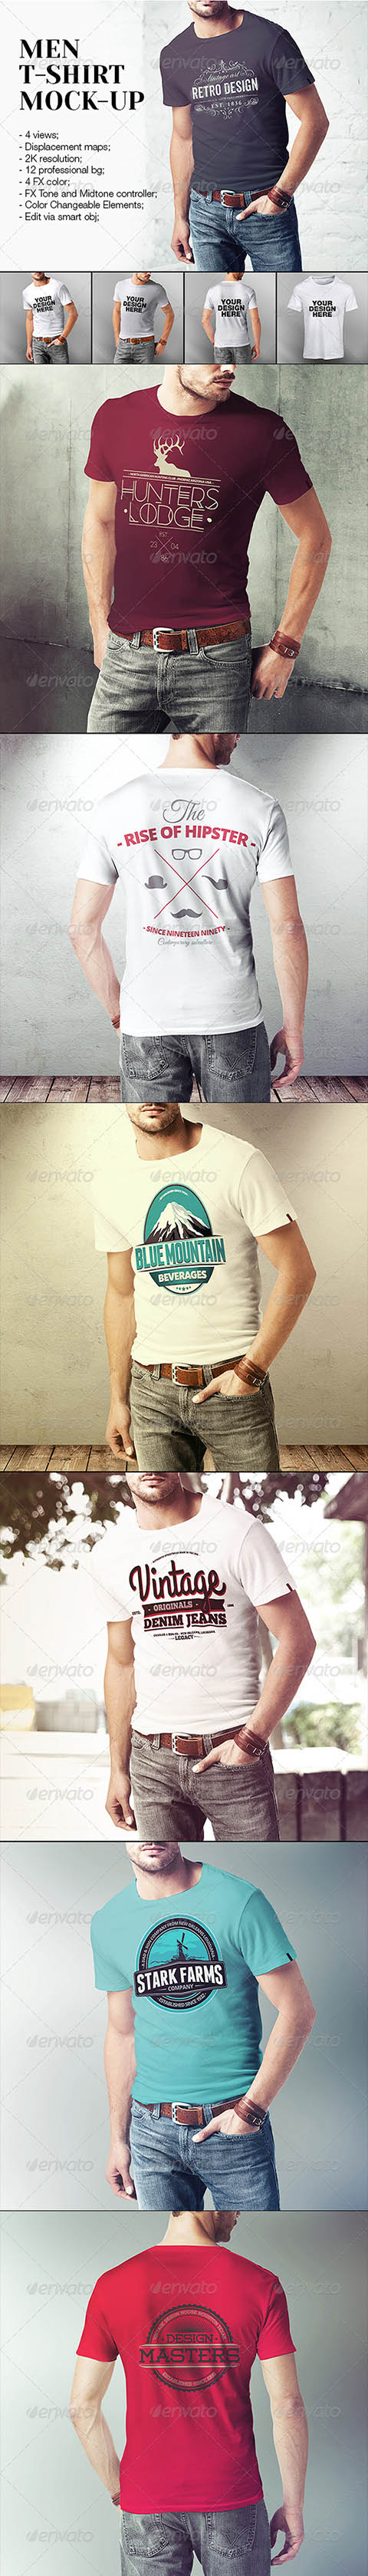 Download Men T Shirt Mock Up 7876525 Free Special Gfx Posts Vectors Aep Projects Psd Web Templates Photoshop Design Fashion Design Template Graphic Design Mockup